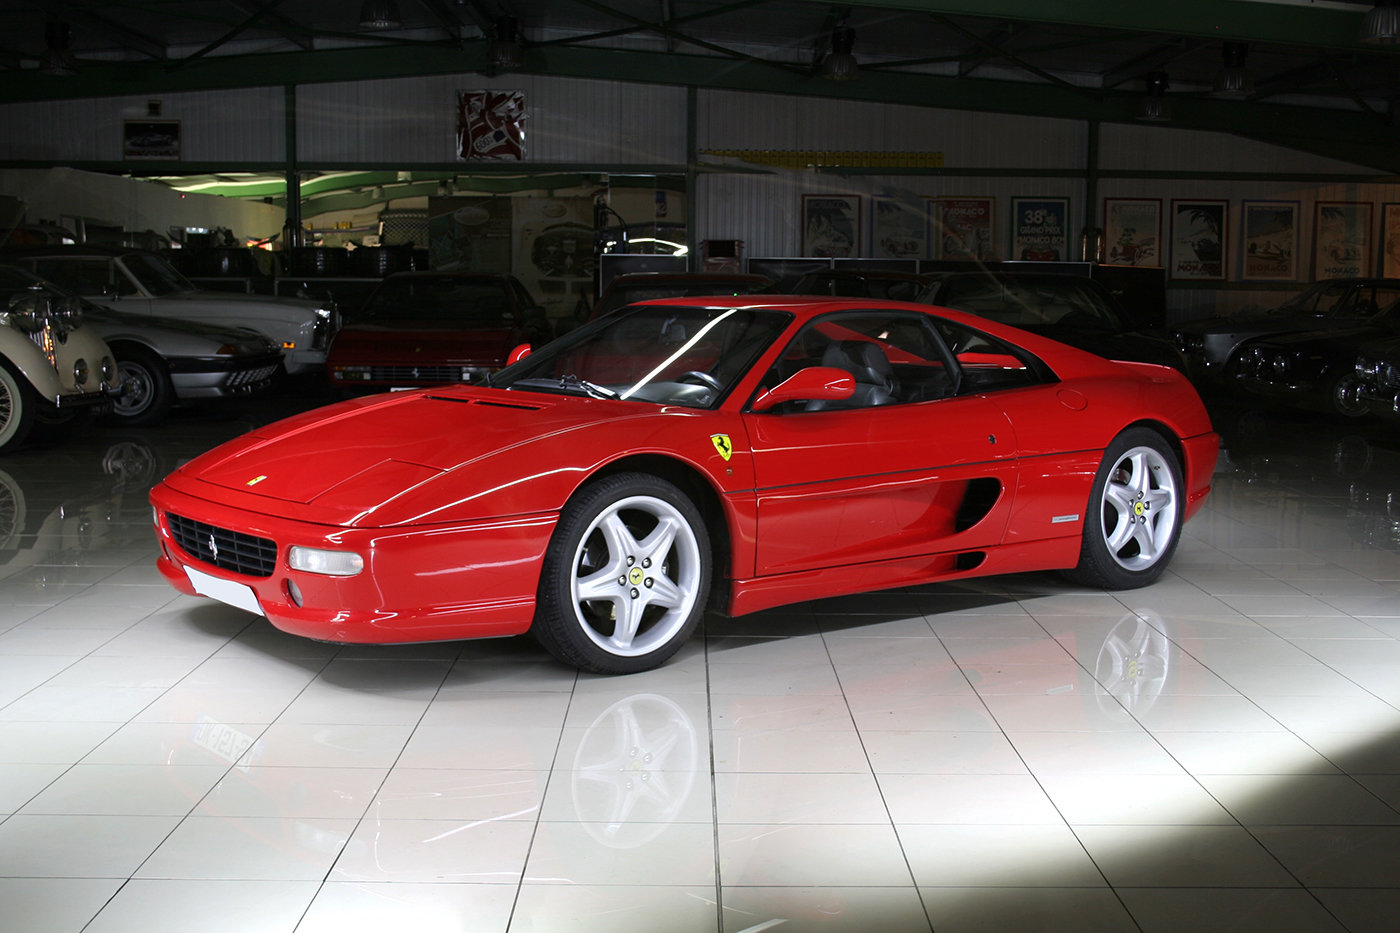 2000 - Ferrari 355 F1 GTB Rosso Corsa - Black For Sale (picture 1 of 6)